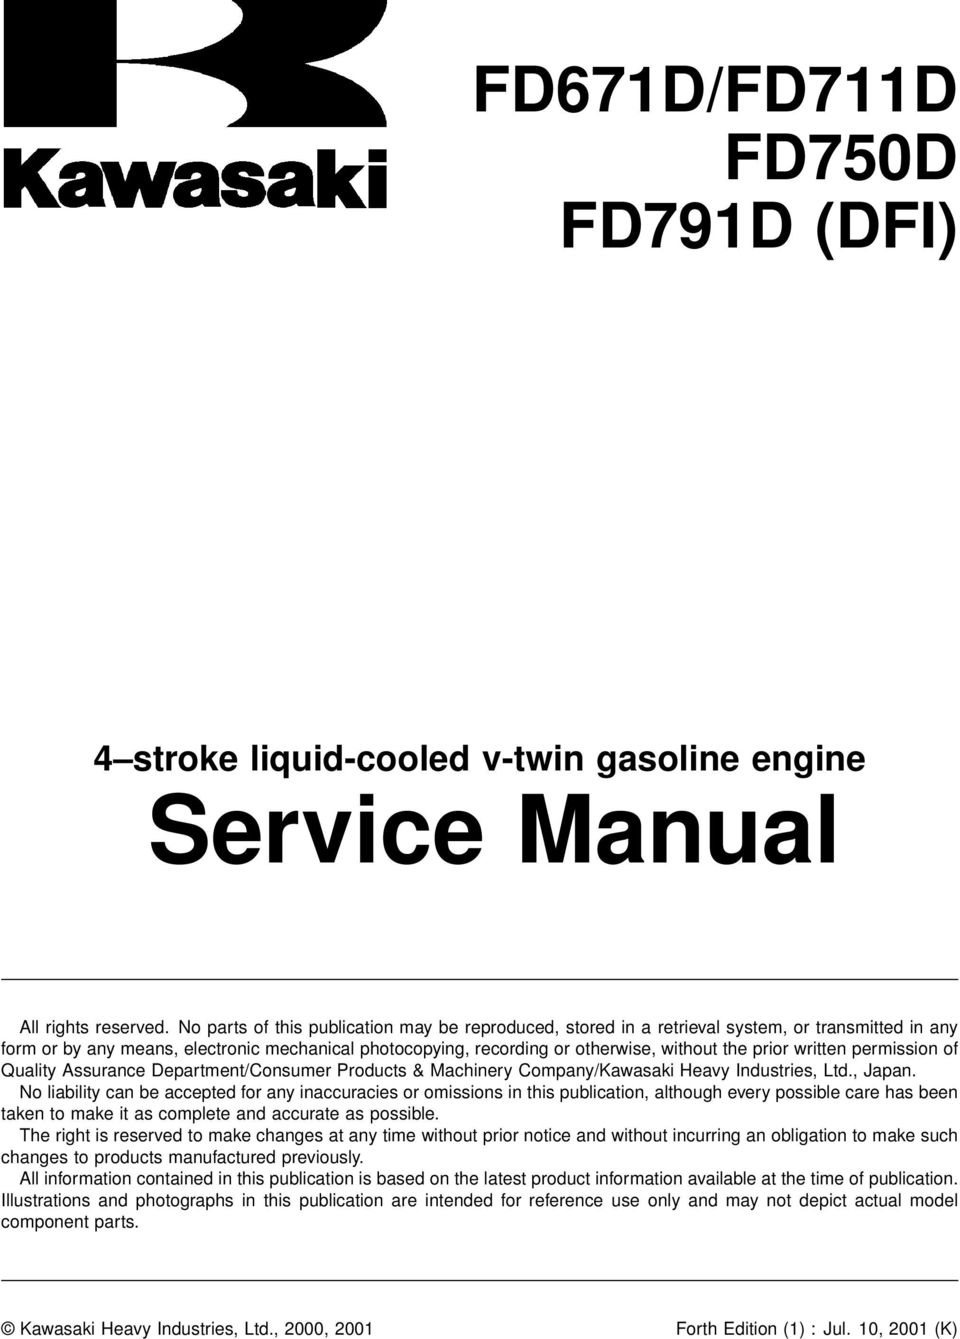 service manual fd671d fd711d fd750d fd791d (dfi) 4 stroke liquid ac drive wiring diagram written permission of quality assurance department consumer products & machinery company kawasaki heavy industries